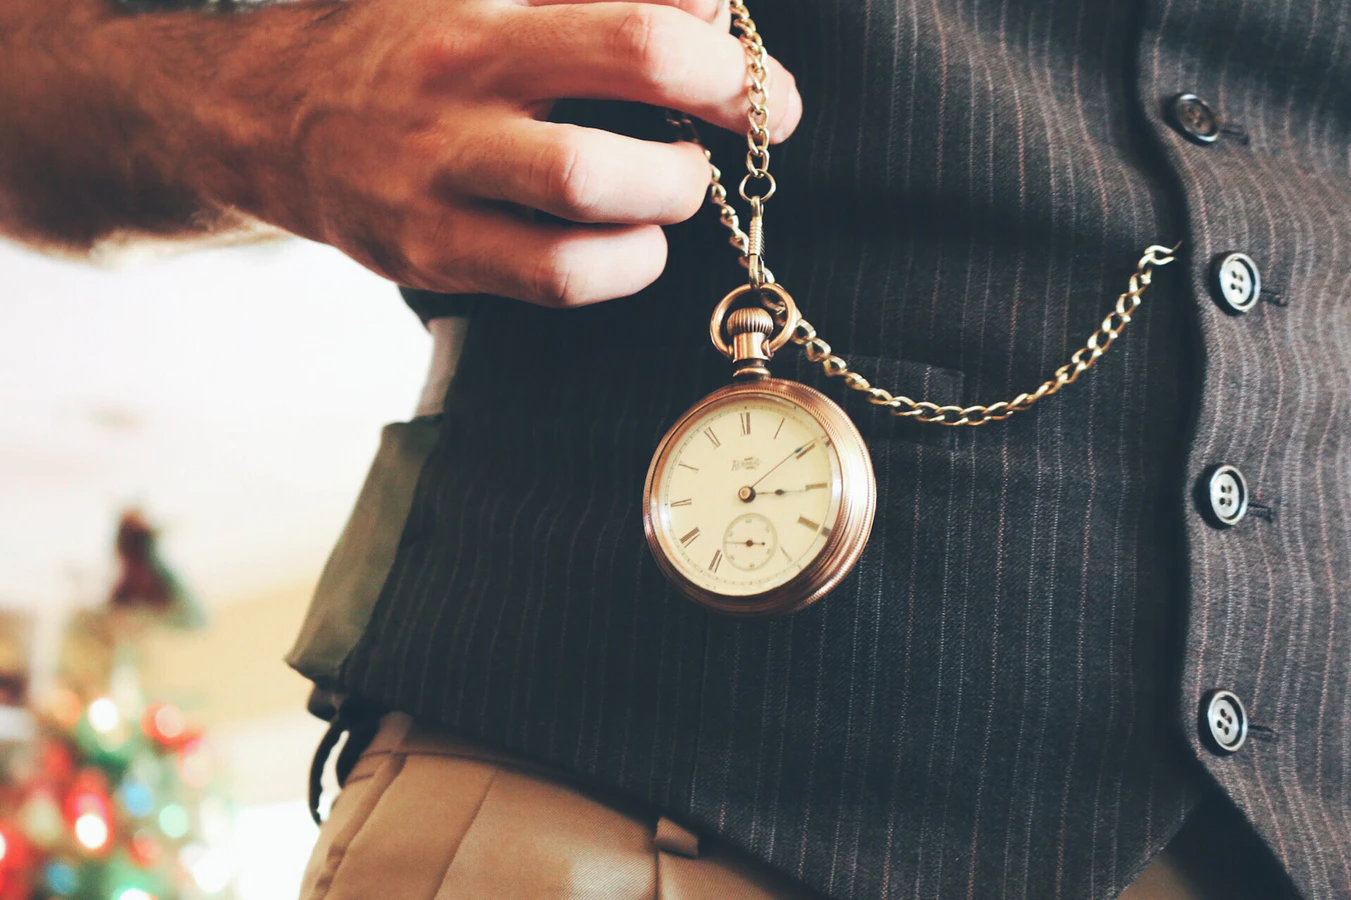 5 Rules in Pairing Your Watch With Your Outfit